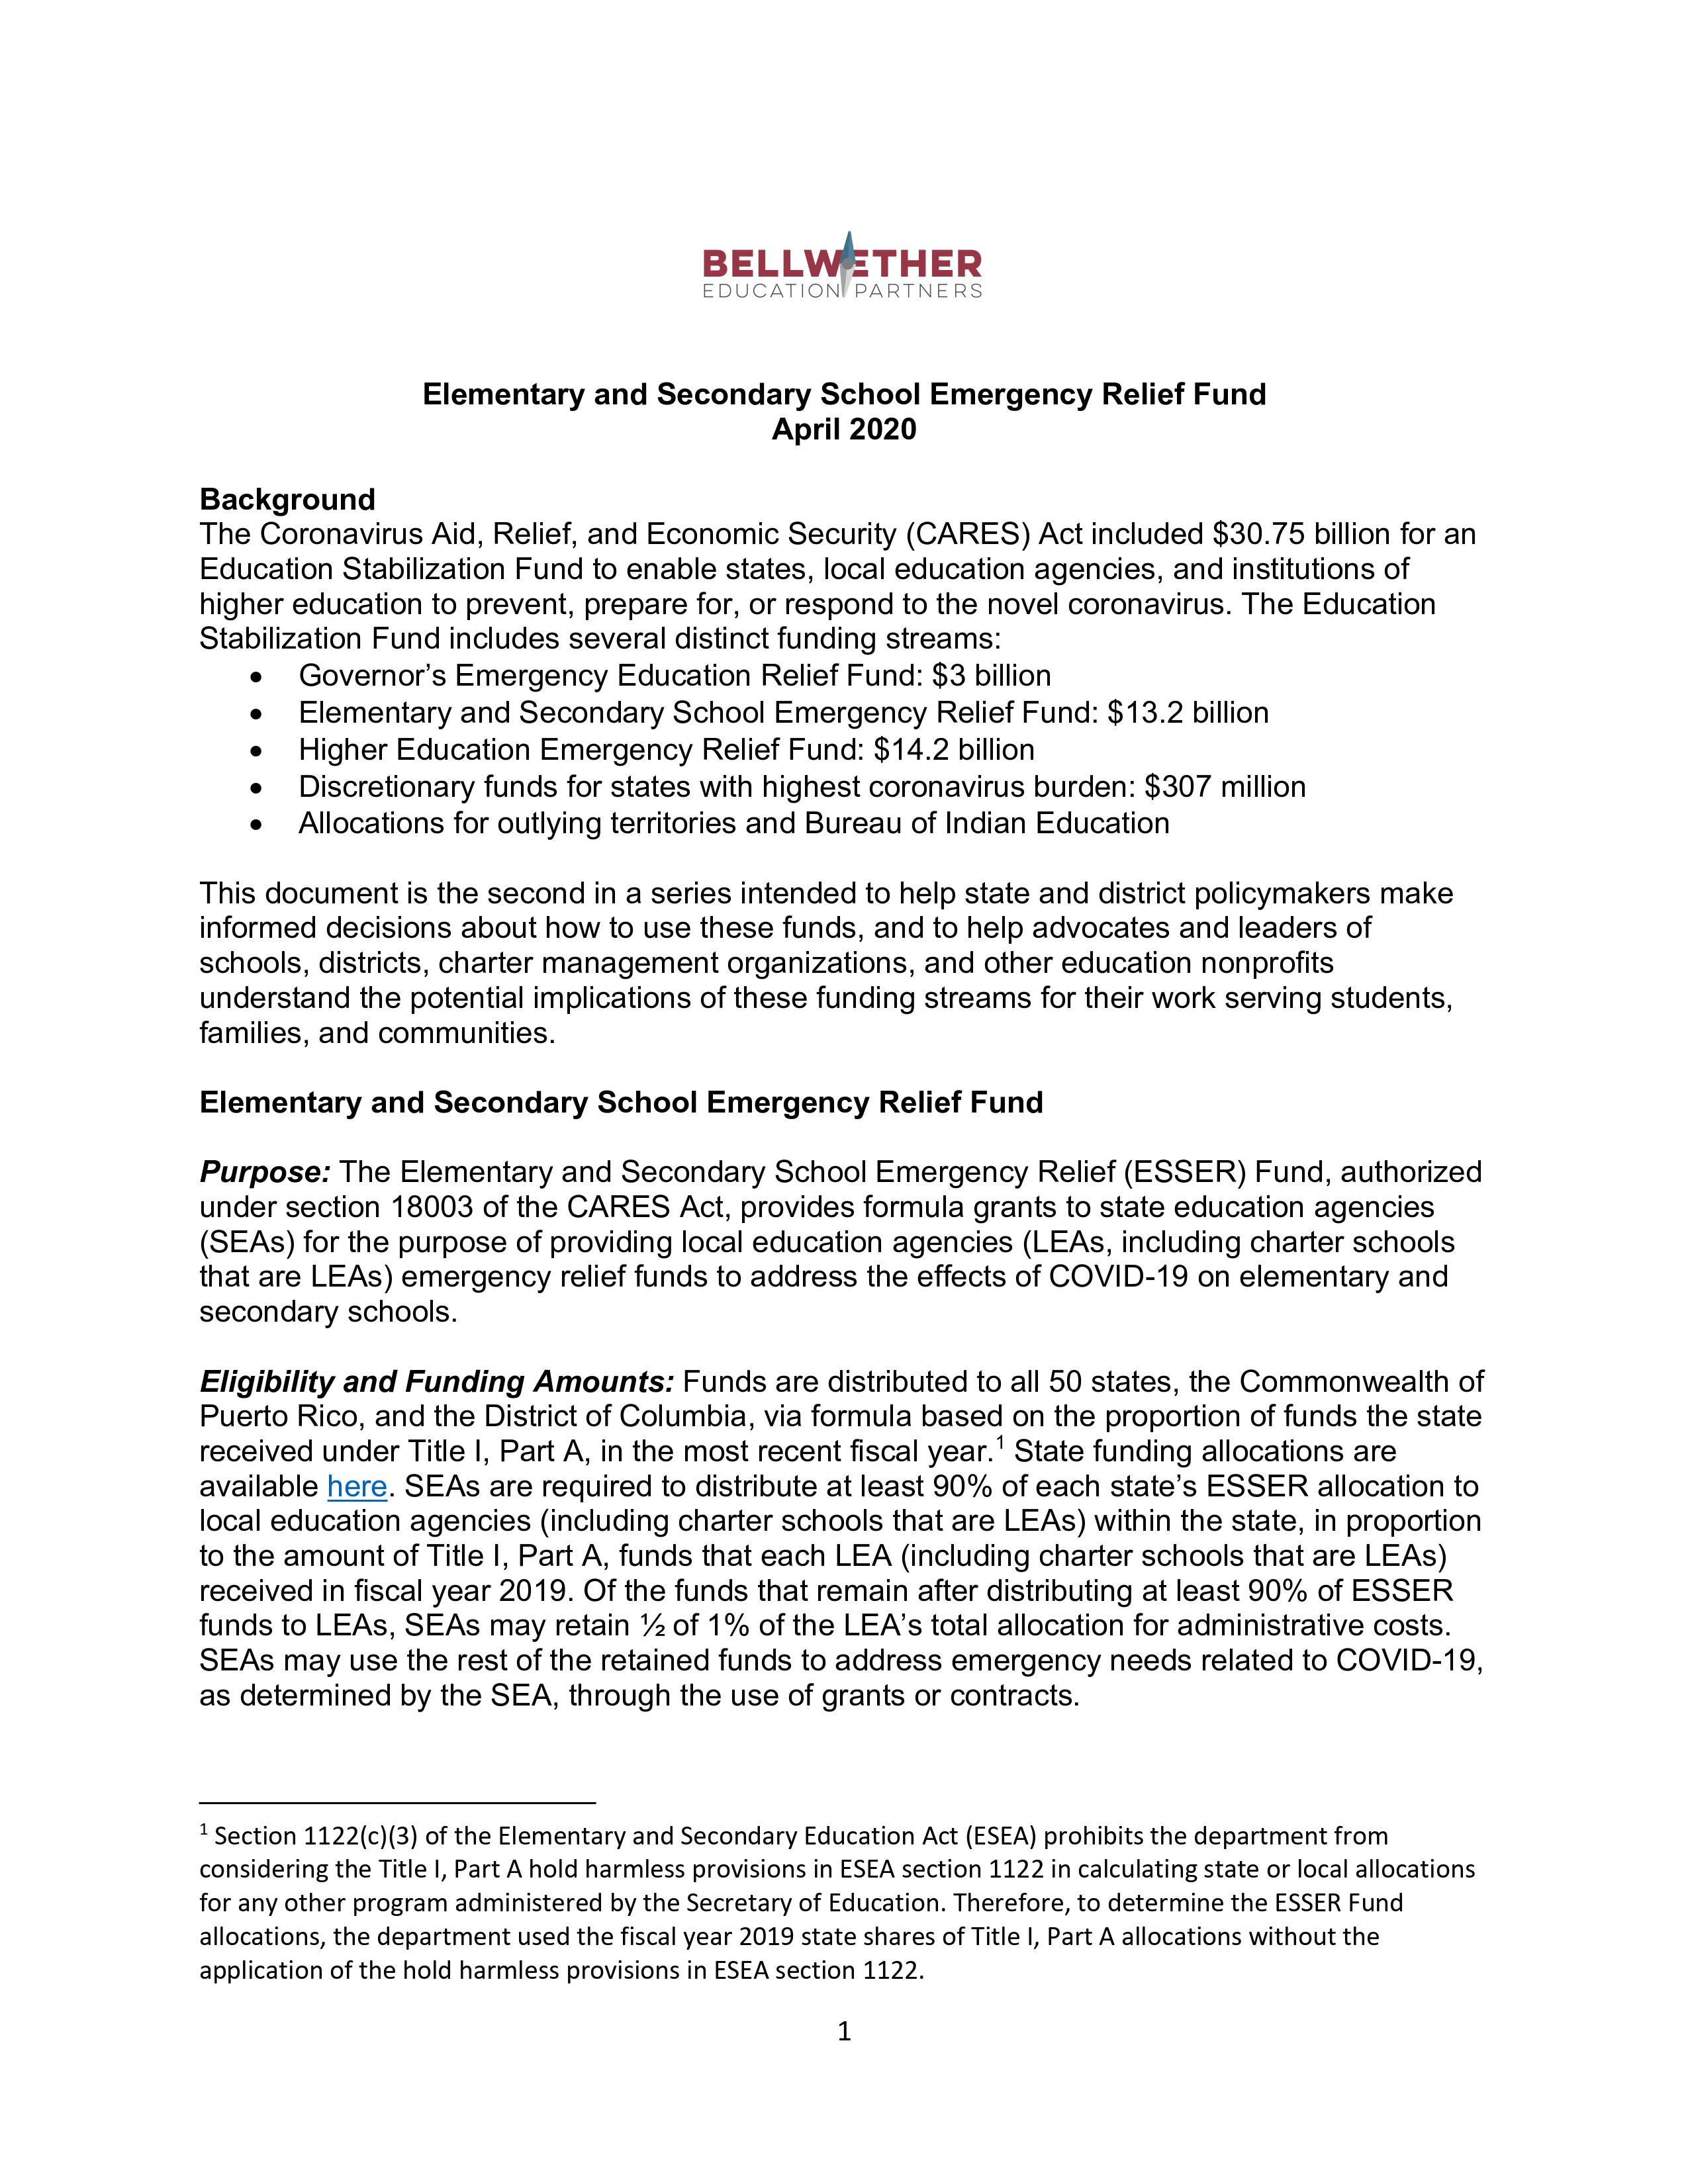 Thumbnail of the PDF policy brief for the Elementary and Secondary School Emergency Relief Fund policy brief